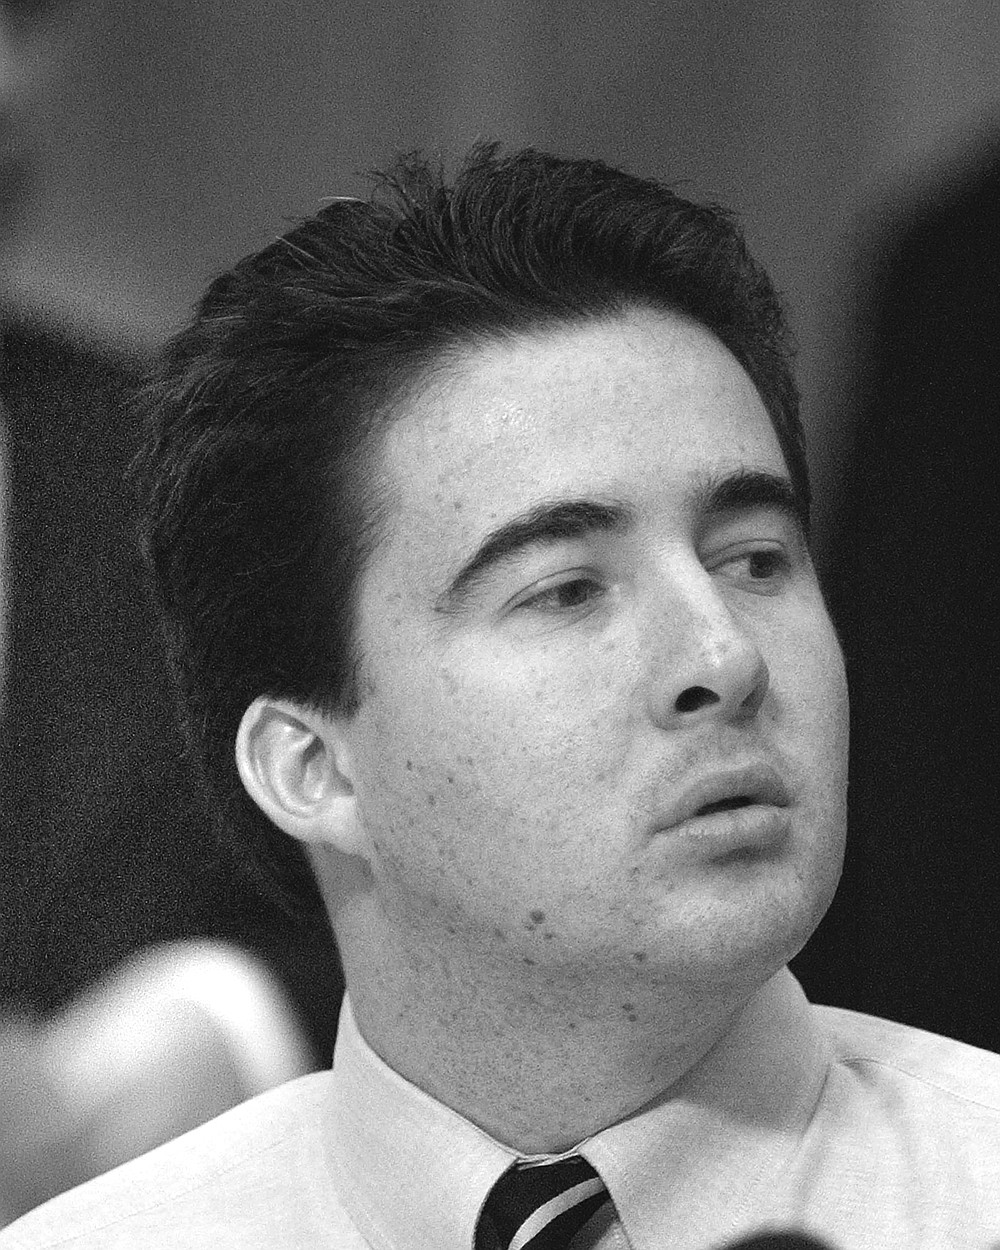 Ralph Inzunza ran for state assembly in the special election held in 2001, defeating 12 other candidates.